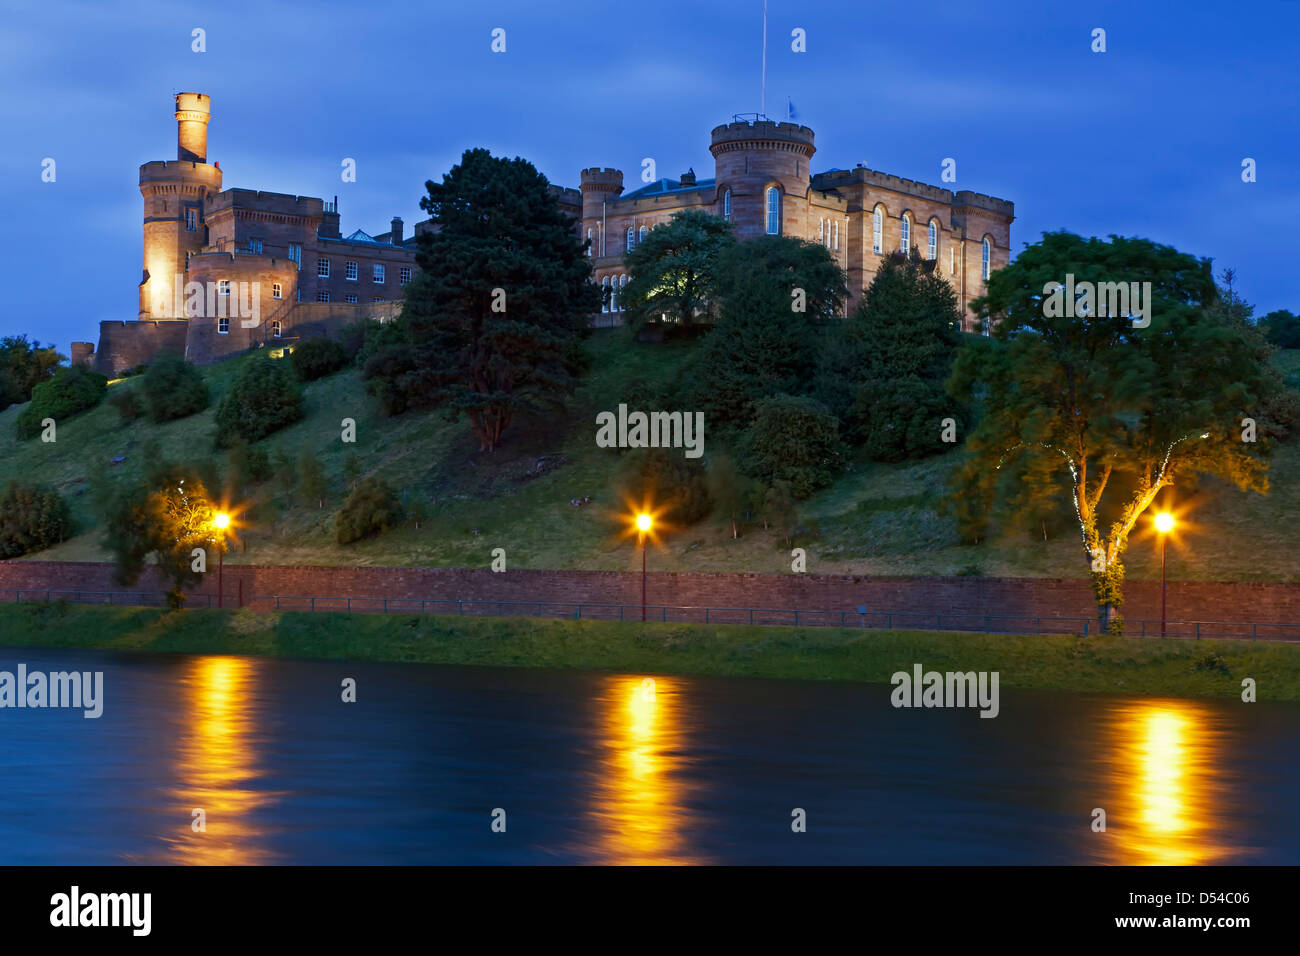 Inverness Castle (courthouse) and River Ness, Inverness, Scotland, United Kingdom - Stock Image